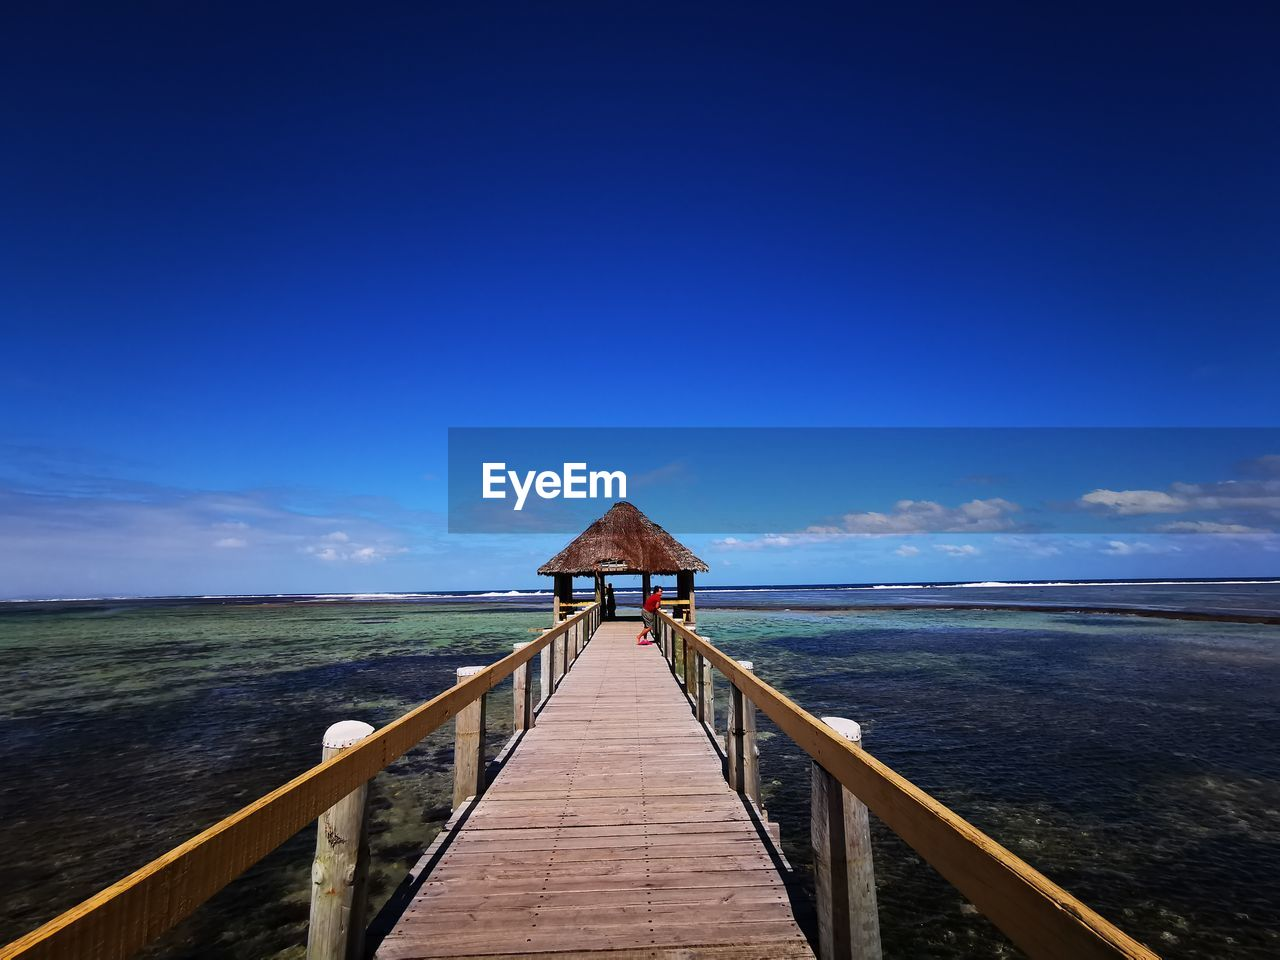 sky, water, sea, blue, beauty in nature, scenics - nature, horizon, pier, horizon over water, tranquility, tranquil scene, the way forward, railing, wood - material, architecture, built structure, nature, direction, idyllic, no people, outdoors, wood paneling, long